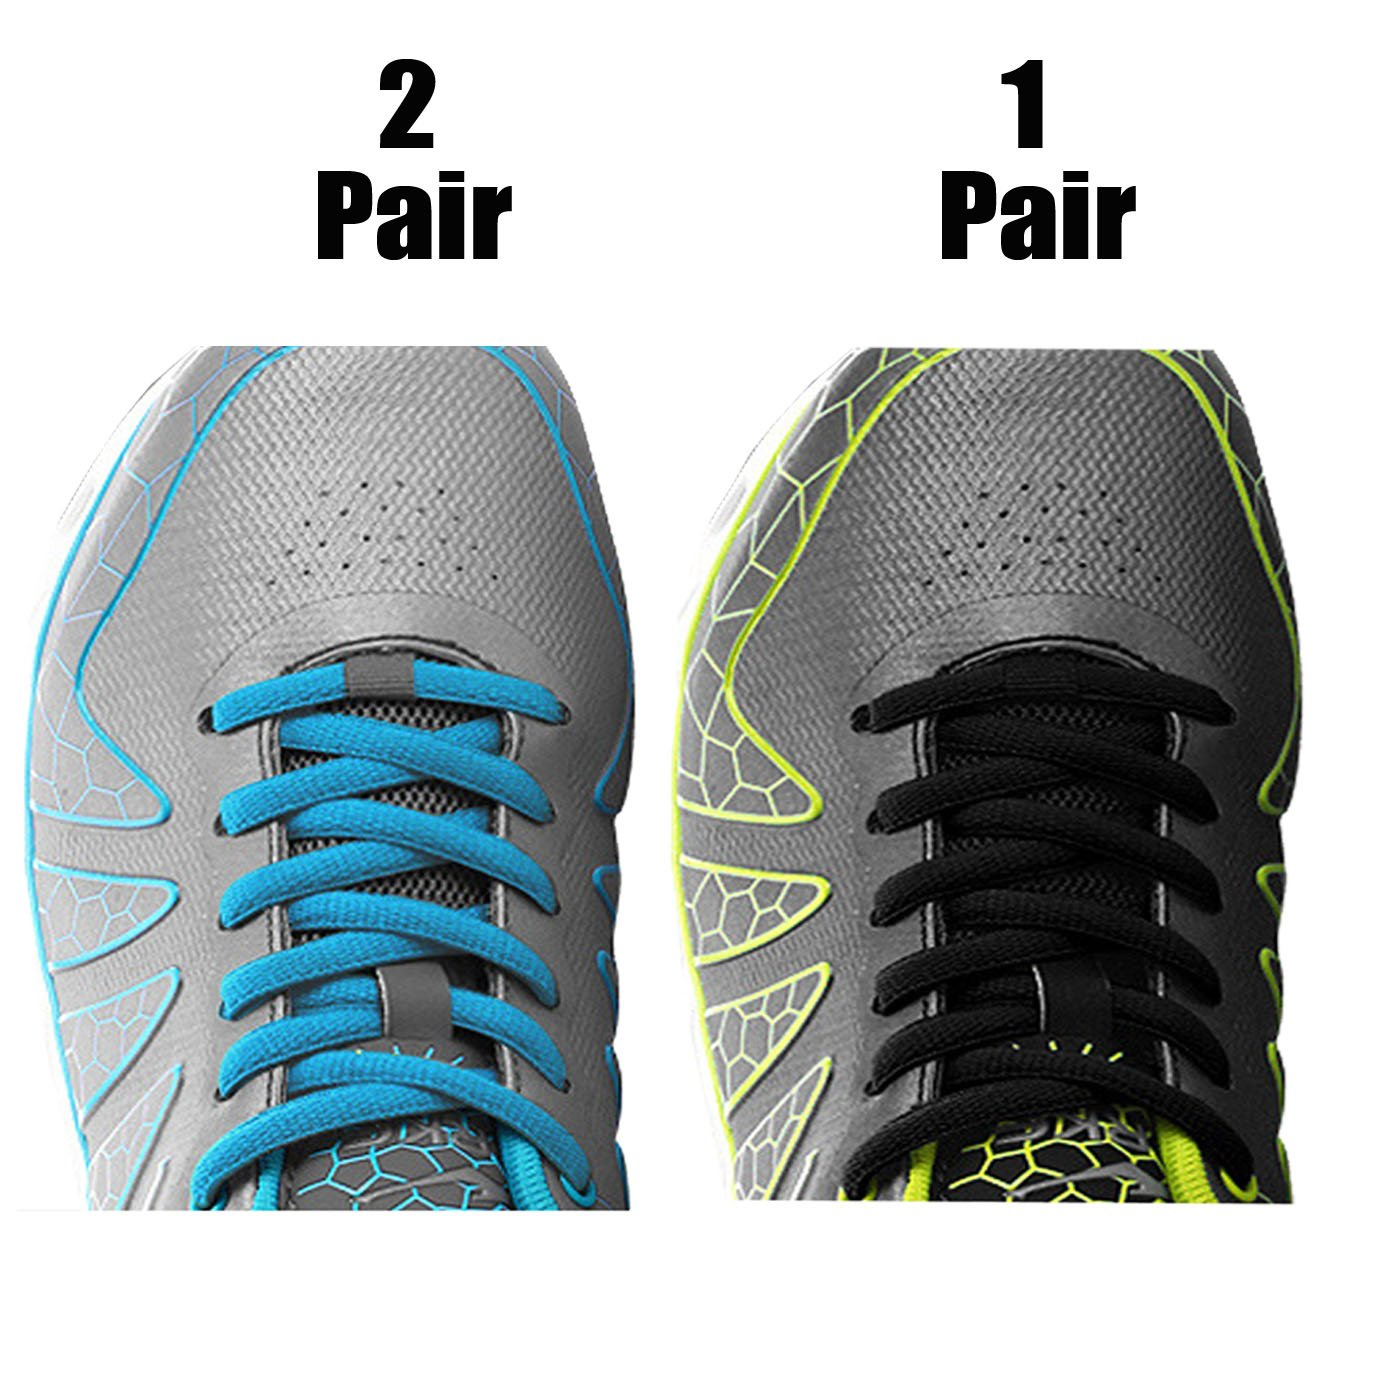 iBarbe [3 Pairs] Replacement Shoelaces Shoe Laces, Strings 45 inch Long x 1/4'' Wide,Strong Shoe Laces for Men,Women,Kids,Toddler & Seniors for Running Tennis Sports Shoes Casual Shoes-Black+Gray